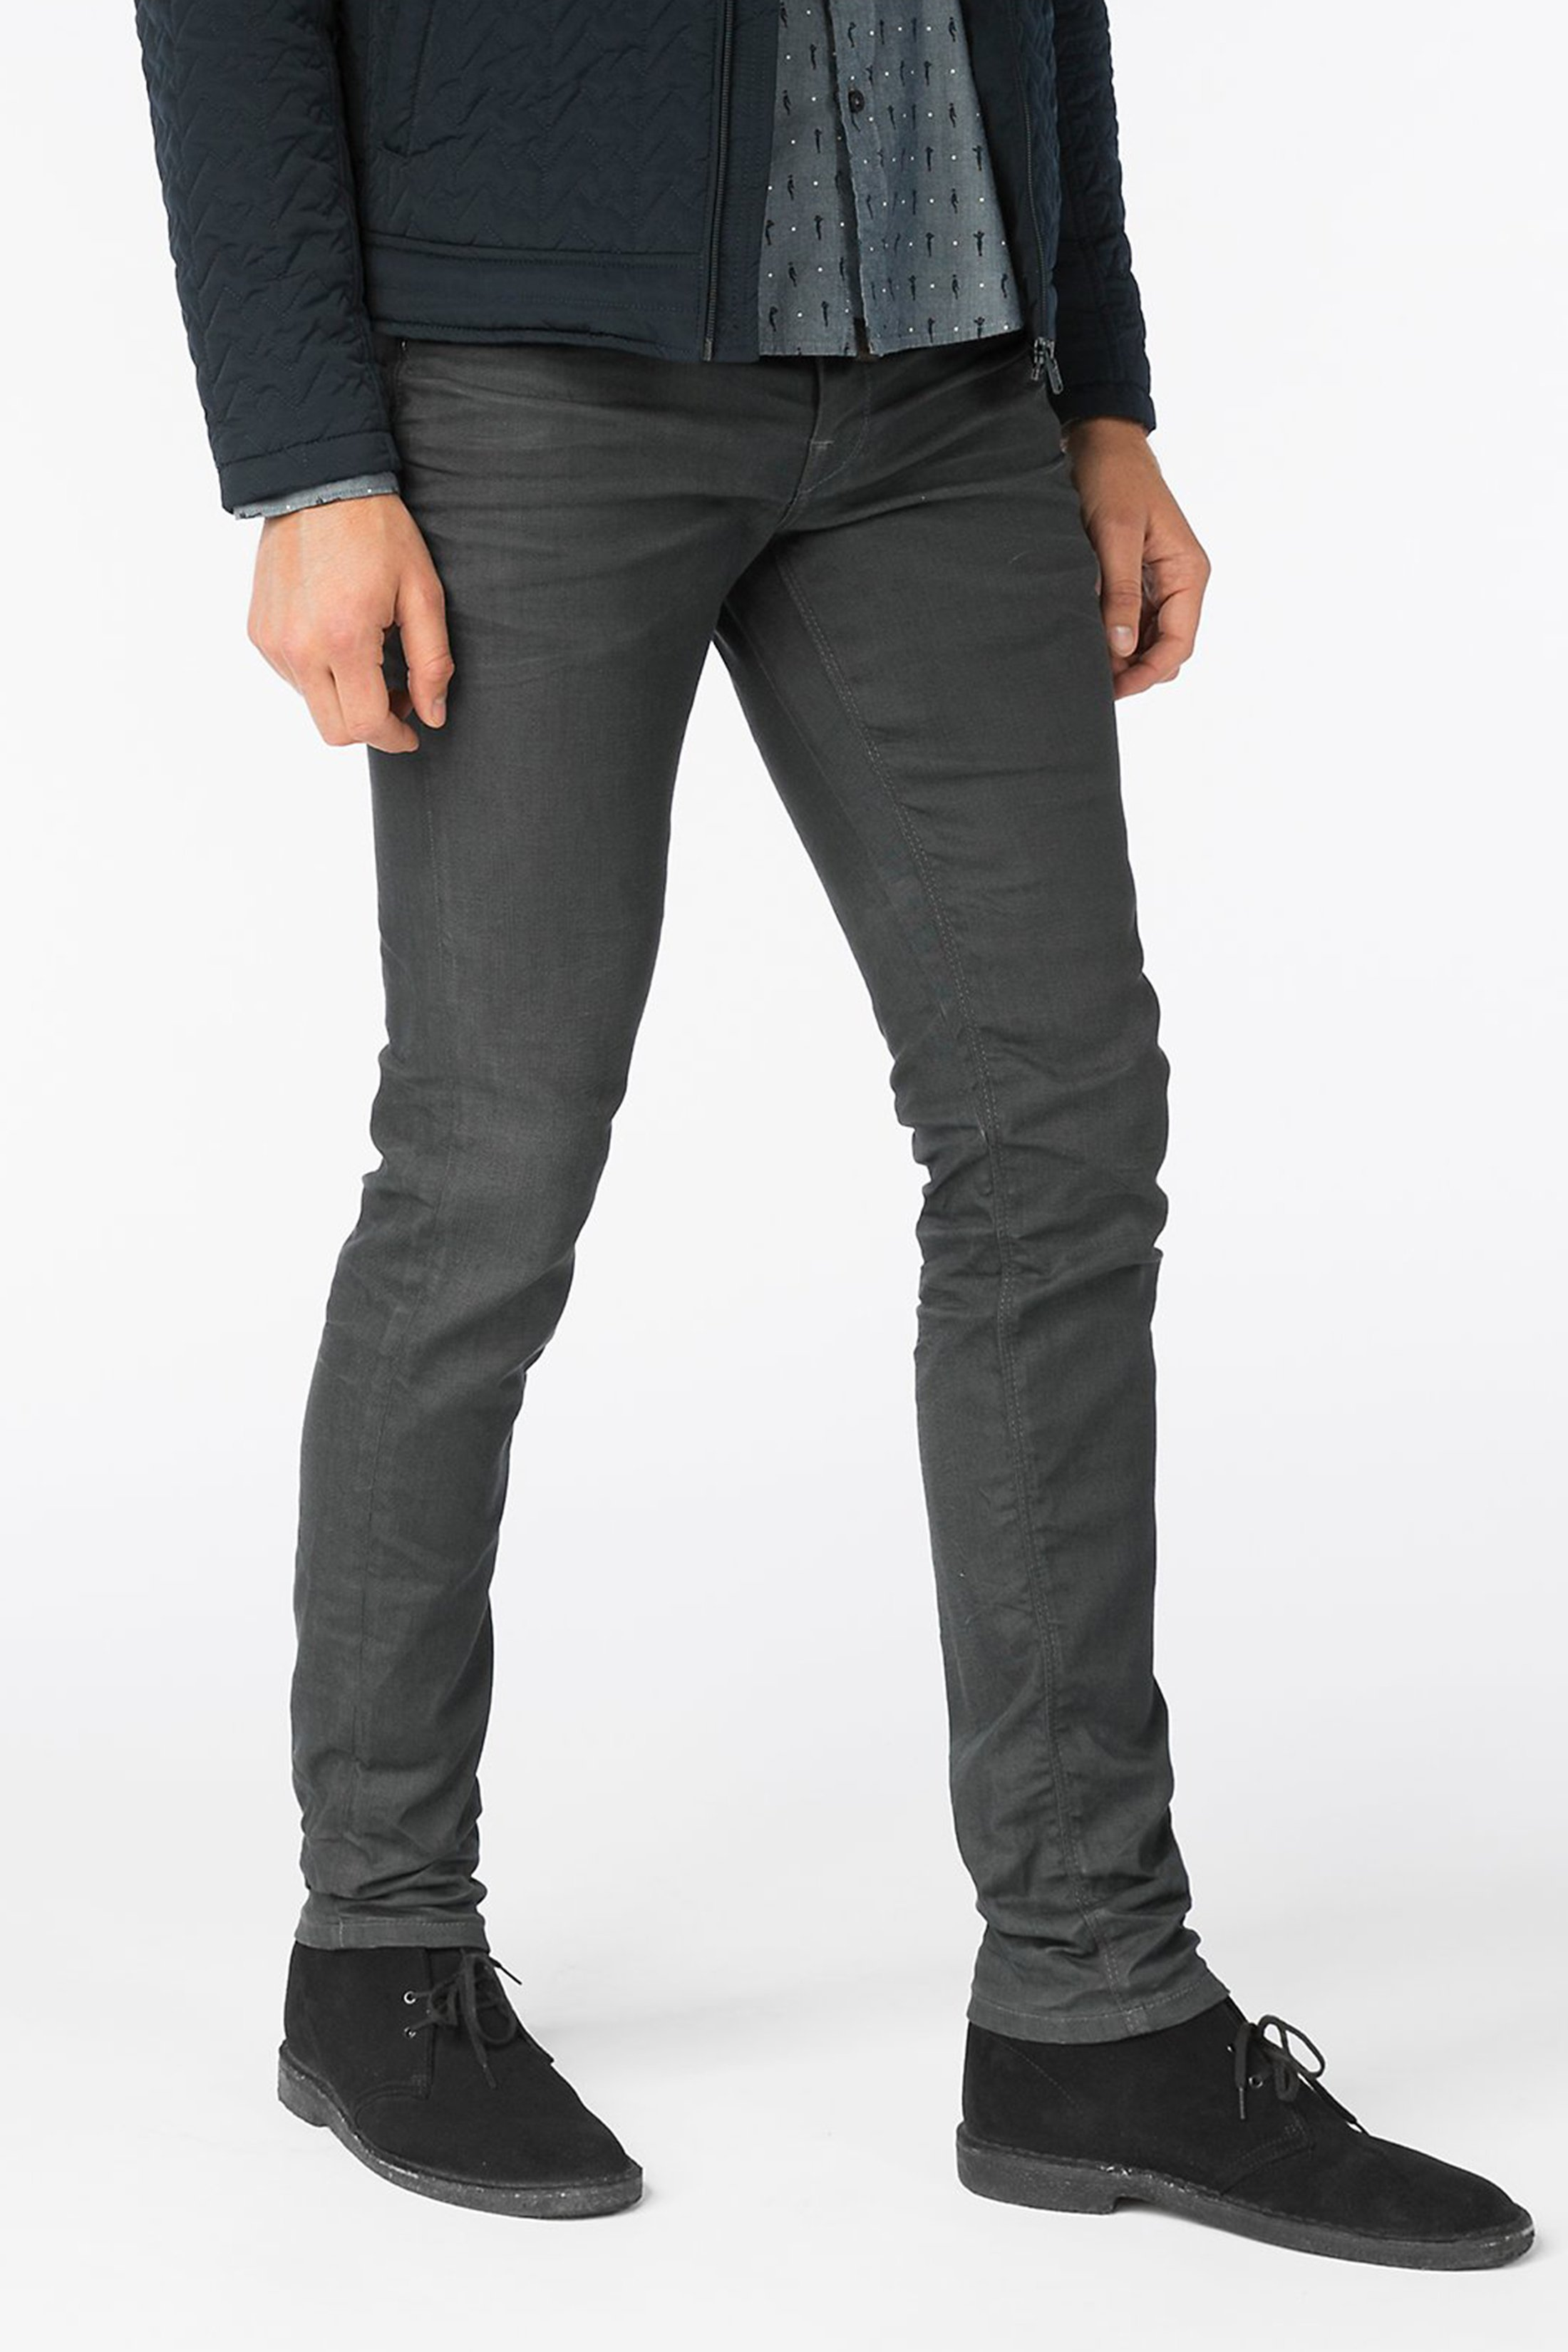 Vanguard V8 Racer Jeans Dark Grey foto 5